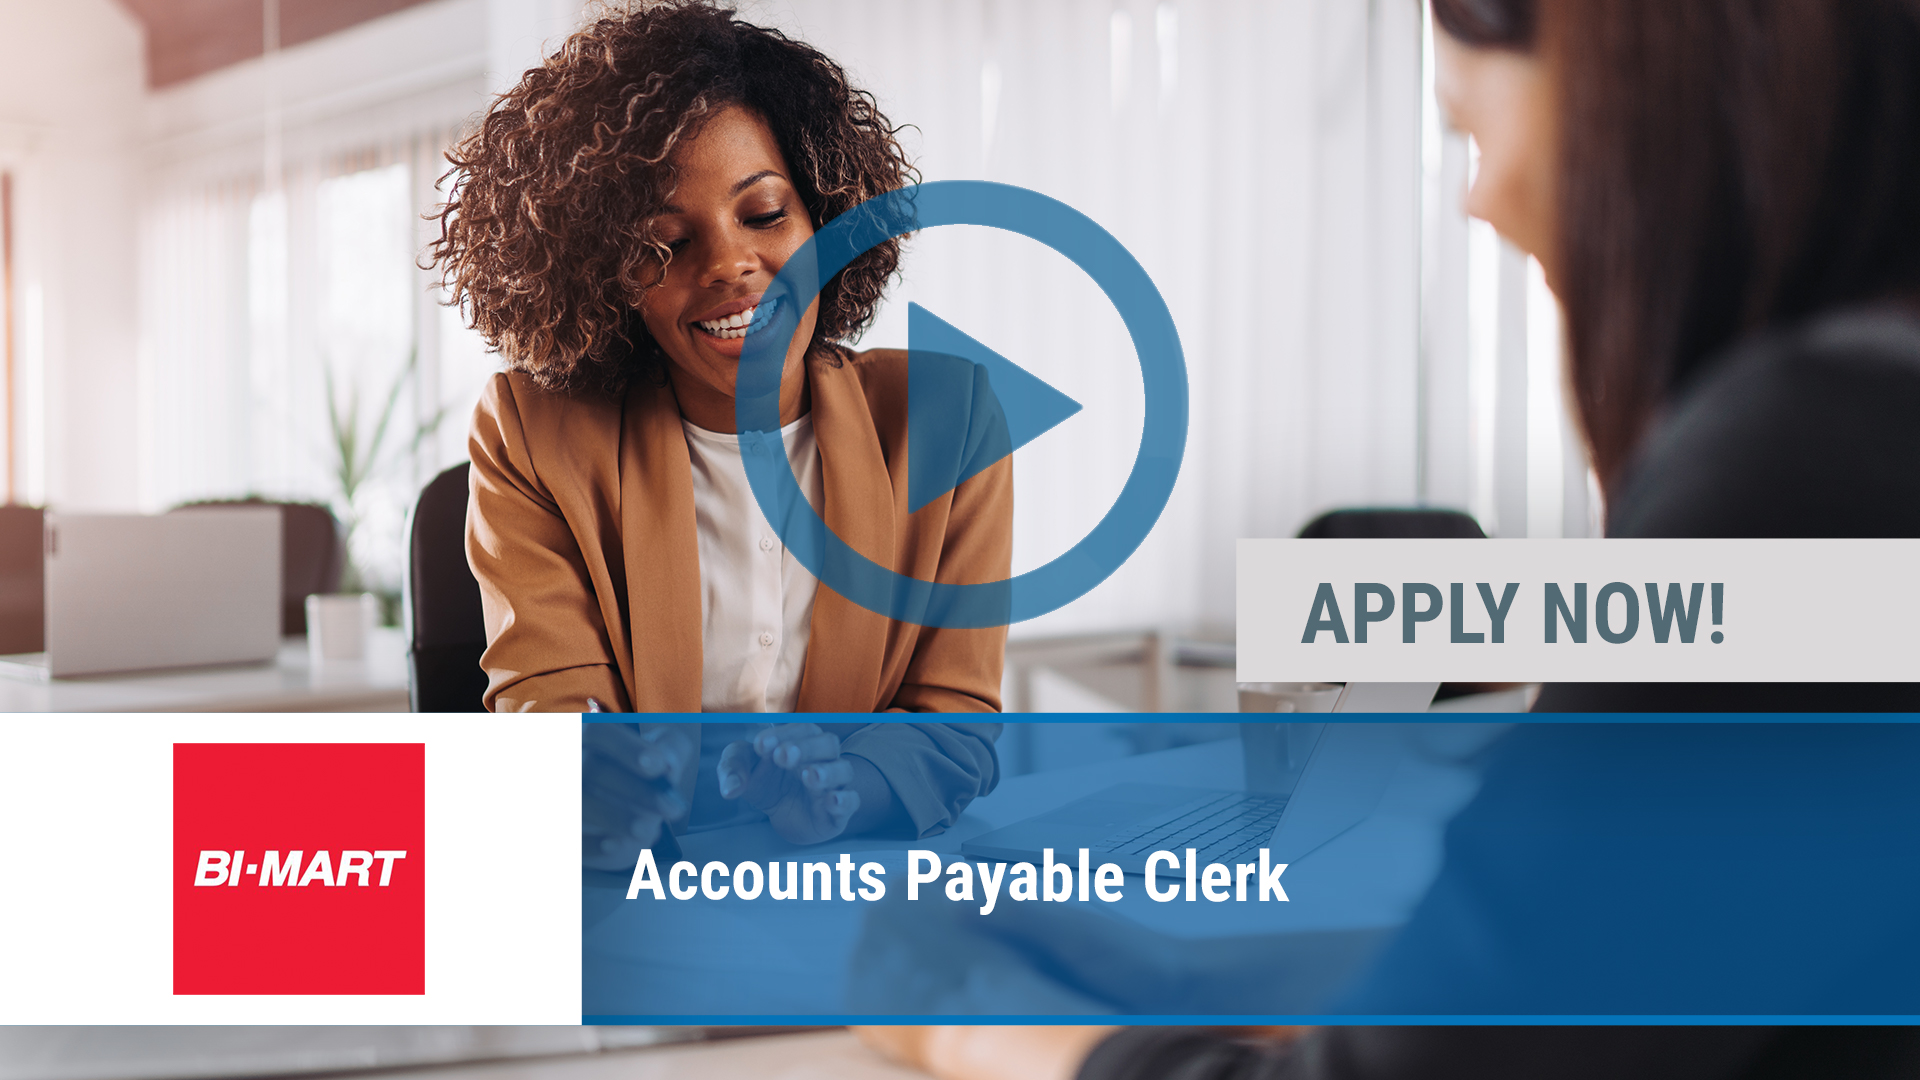 Watch our careers video for available job opening Accounts Payable Clerk in Eugene, OR